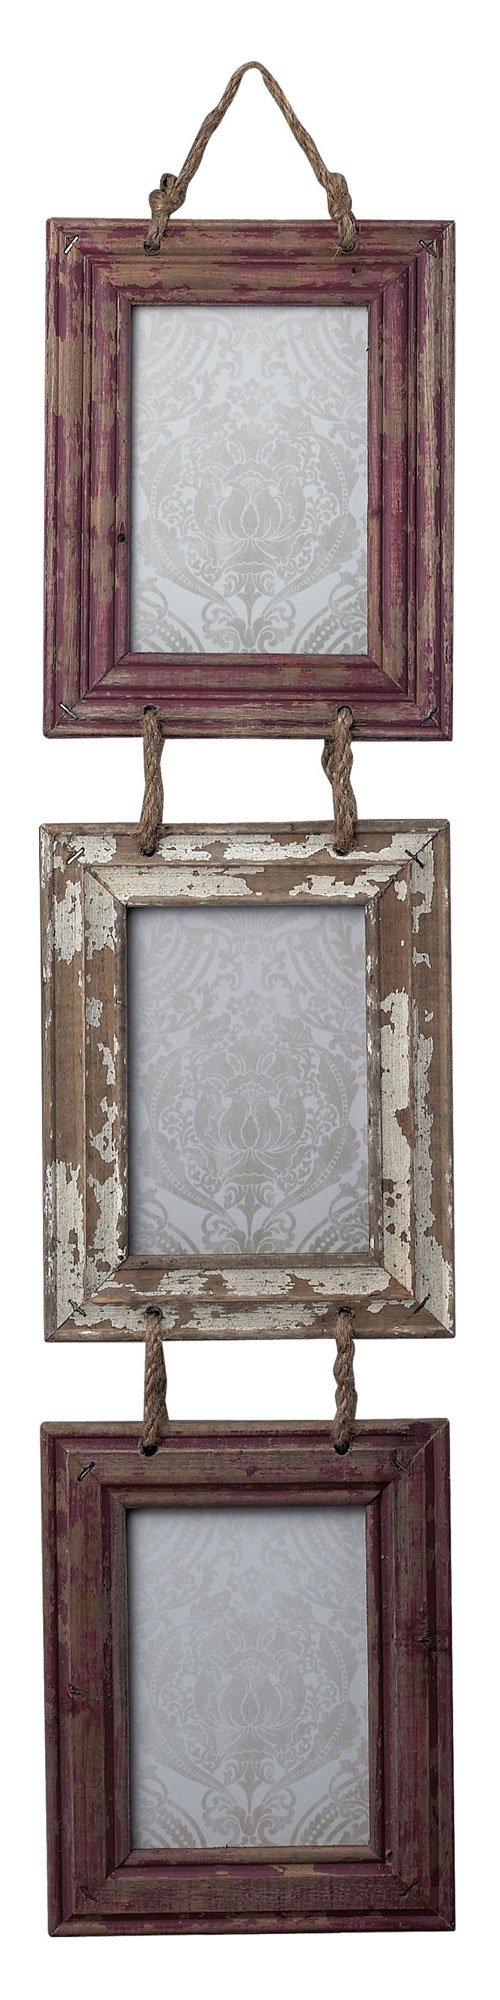 Sterling 128-1026 Coastal Set of Picture Frames with Natural Rope Hanger, 8 by 35-Inch, Distressed Country Red/White